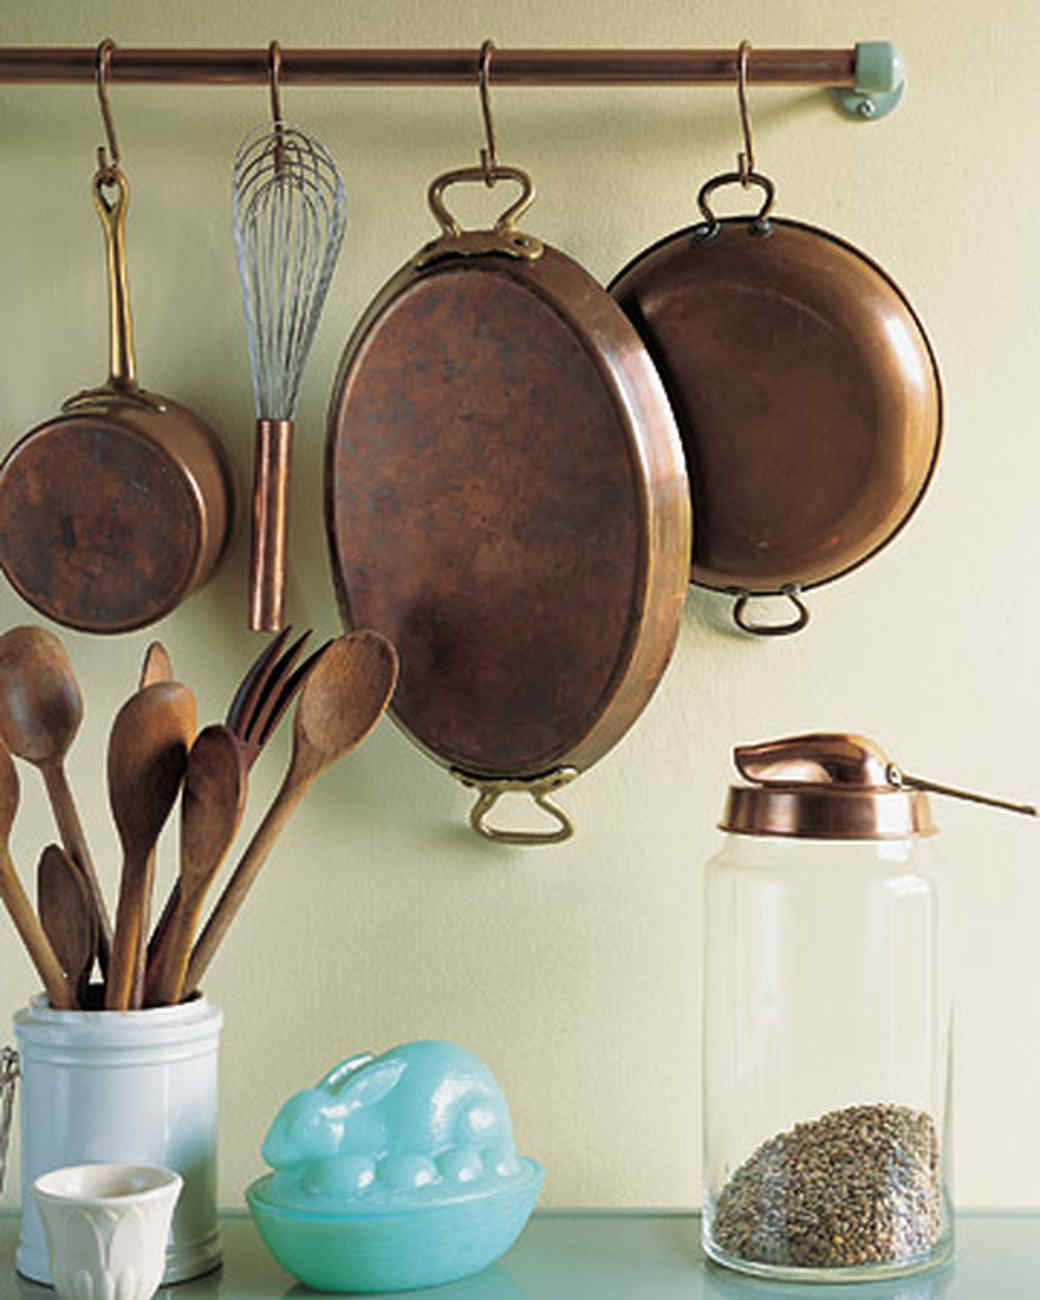 Of Kitchen 5 Golden Rules Of Kitchen Organization Martha Stewart